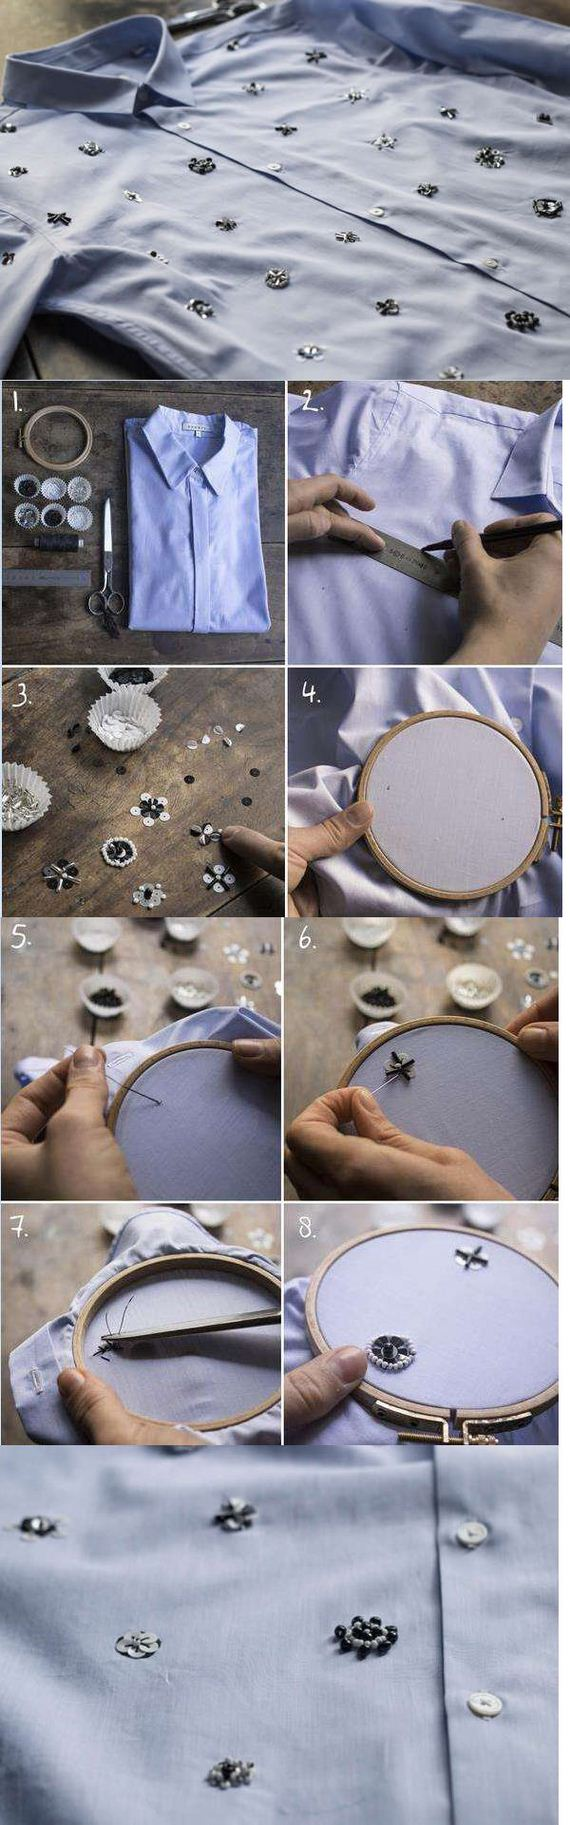 05-diy-clothes-ideas